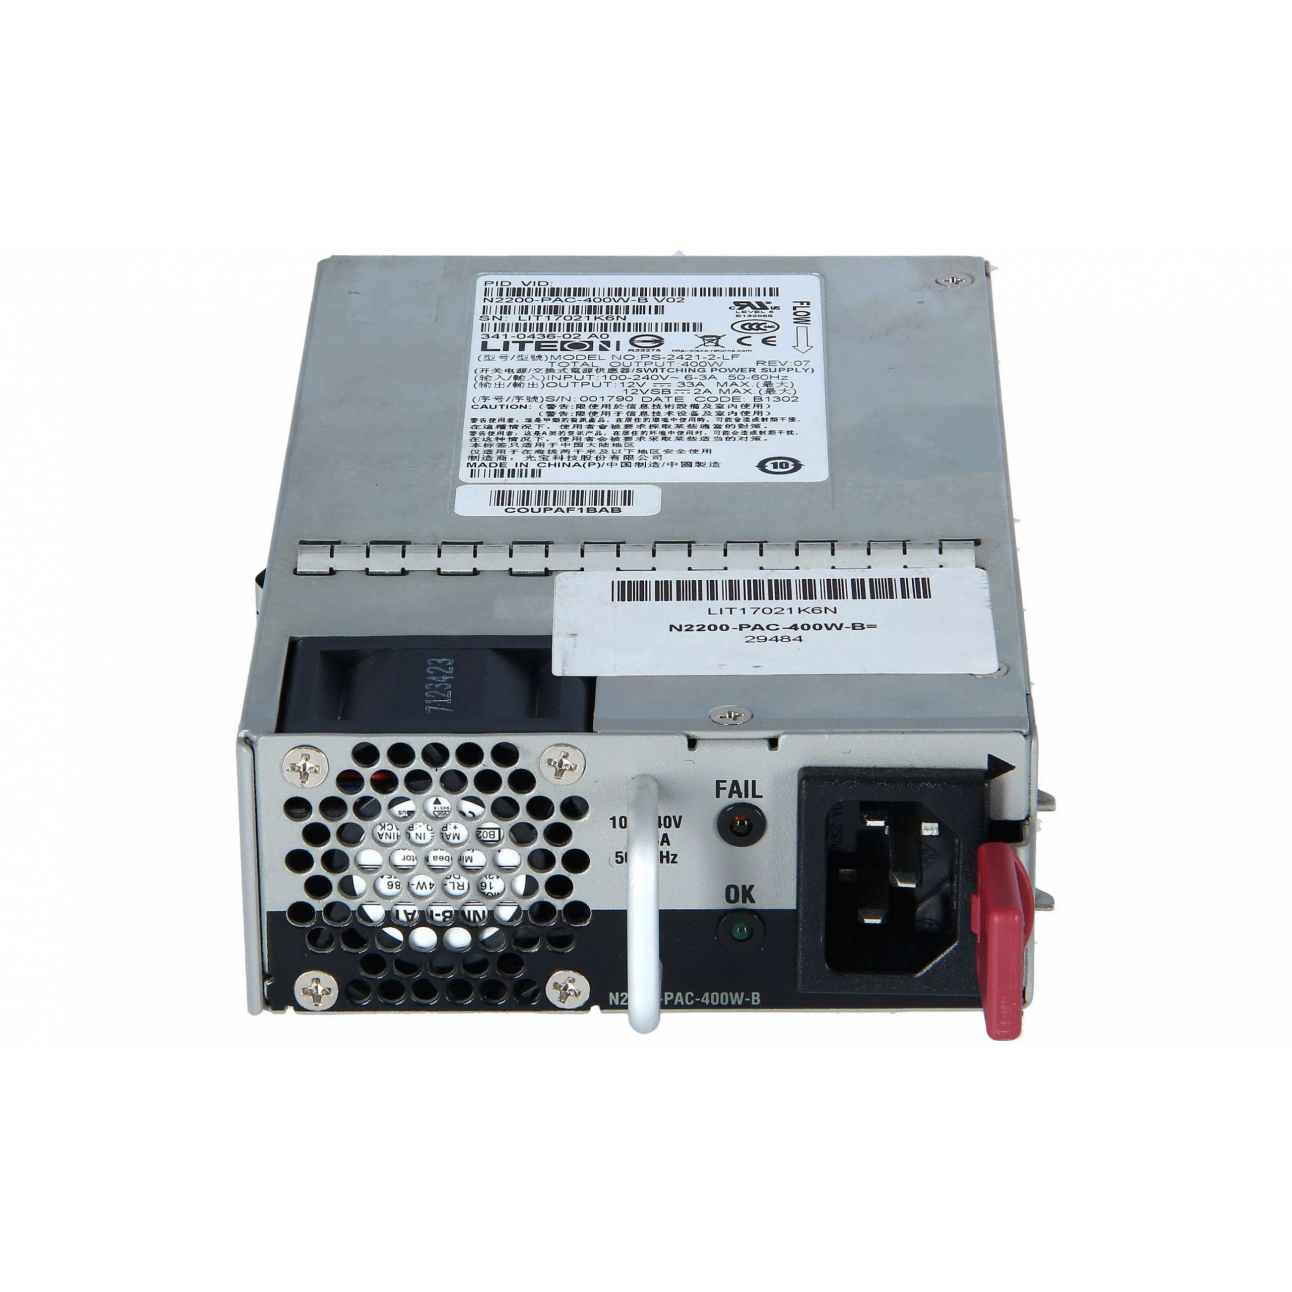 Блок питания Cisco N2200-PAC-400W-B